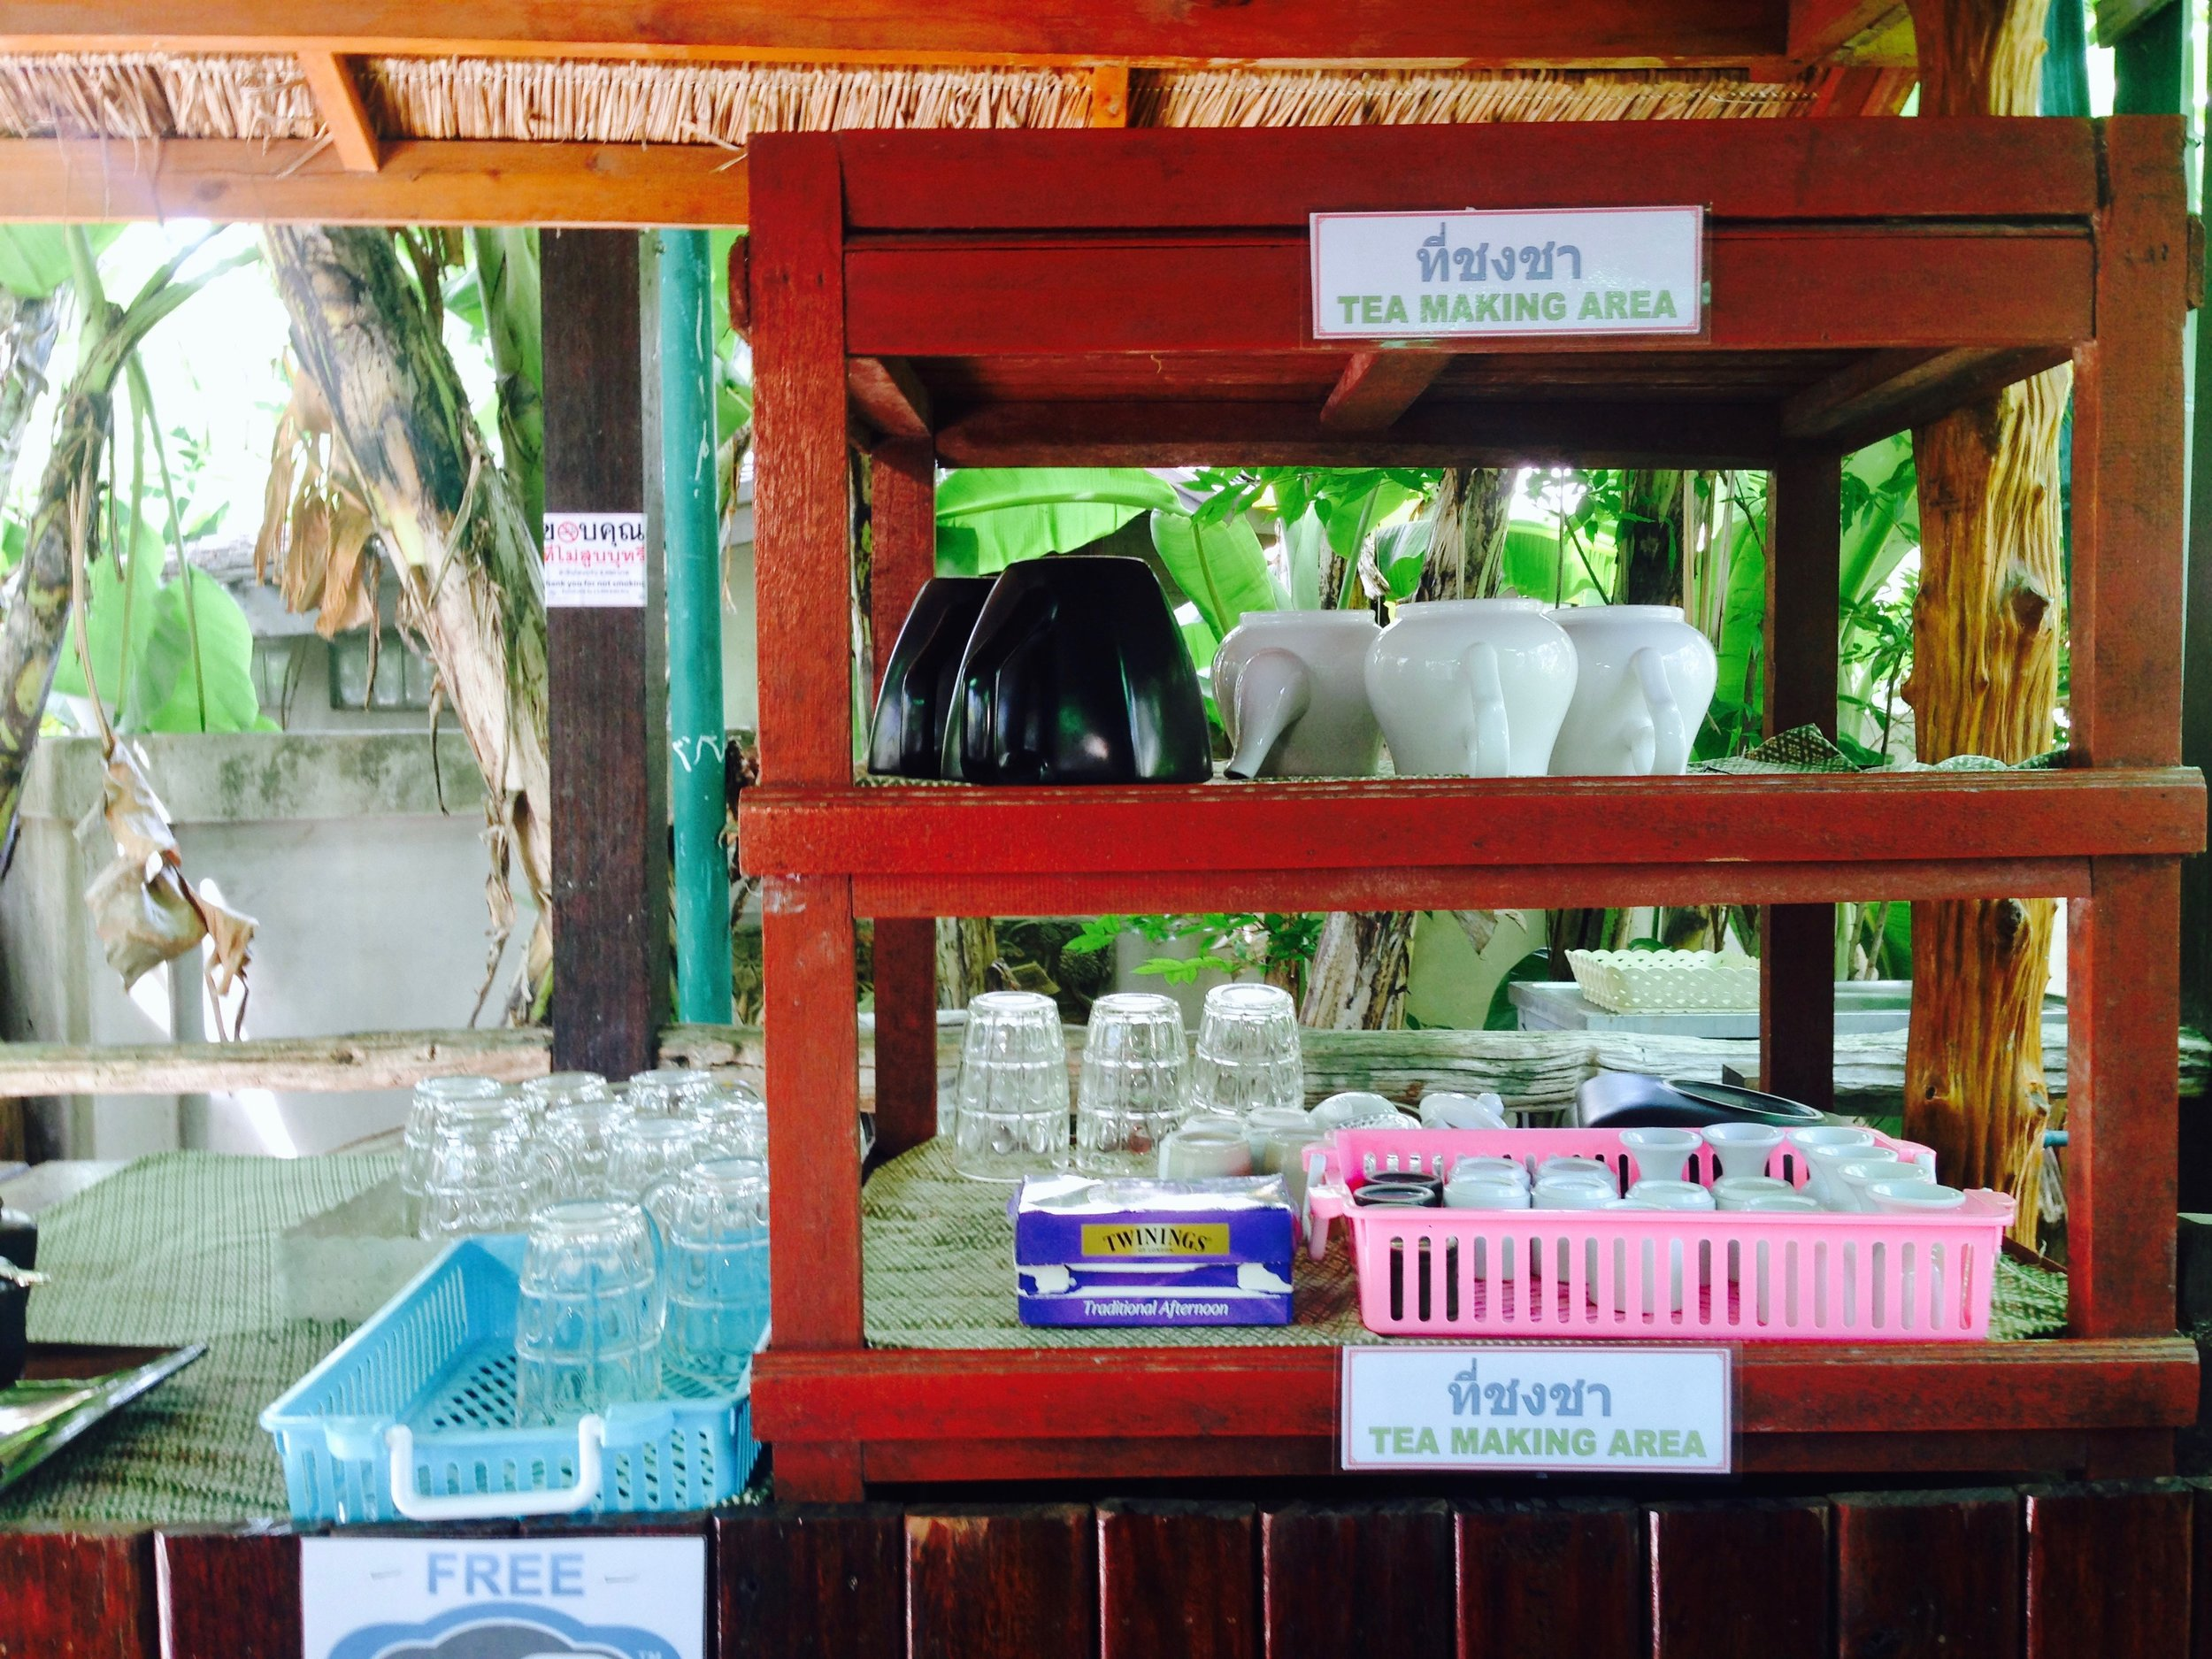 When your tastebuds need some flavor, you can always count on the herbal tea making area